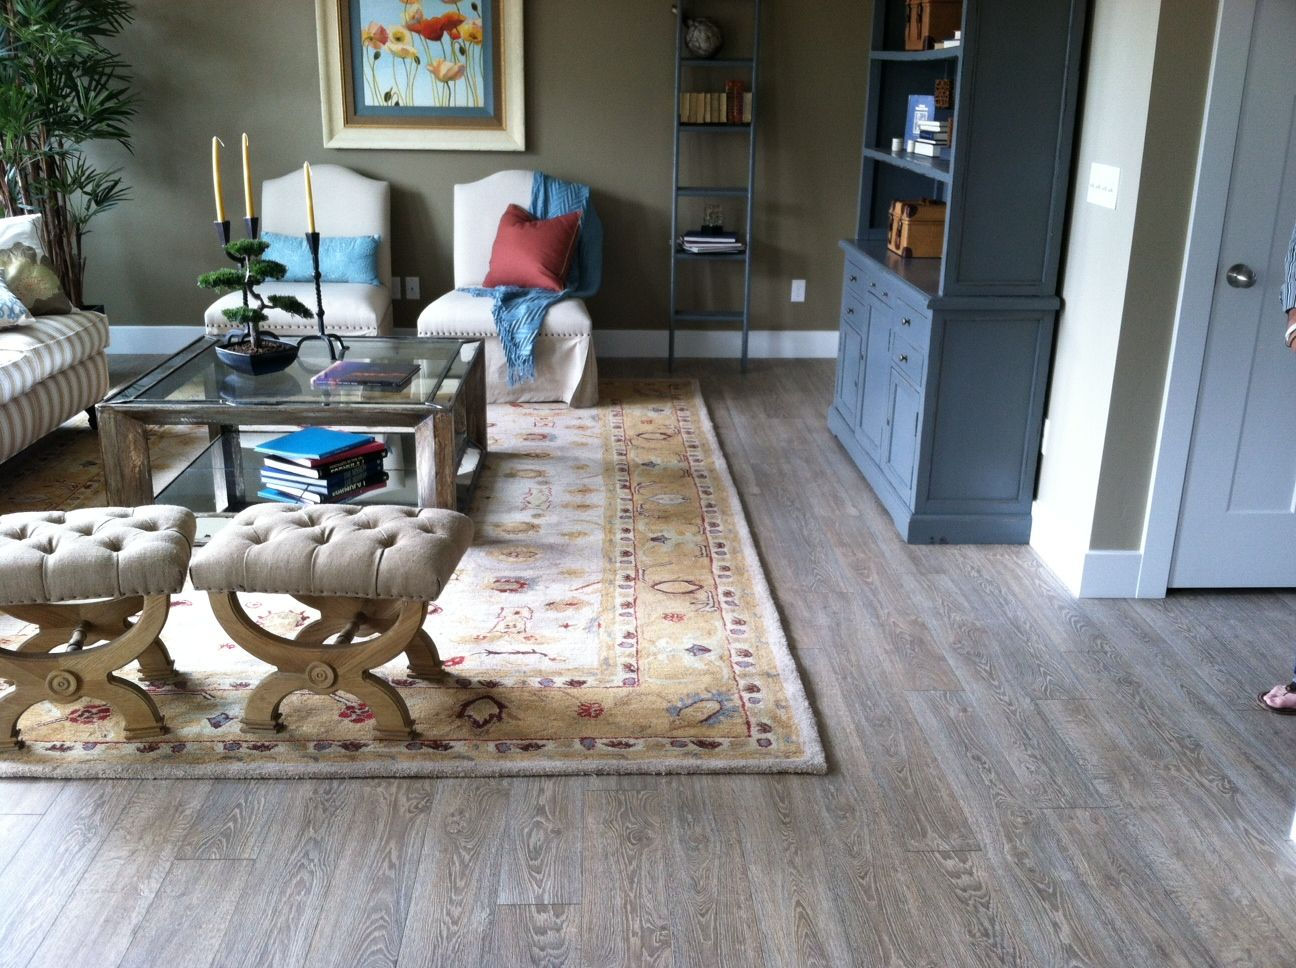 Mannington Laminate Flooring Installation Part - 32: Believe It Or Not, This Is Manningtonu0027s Black Forest Oak Laminate In A  Model Home